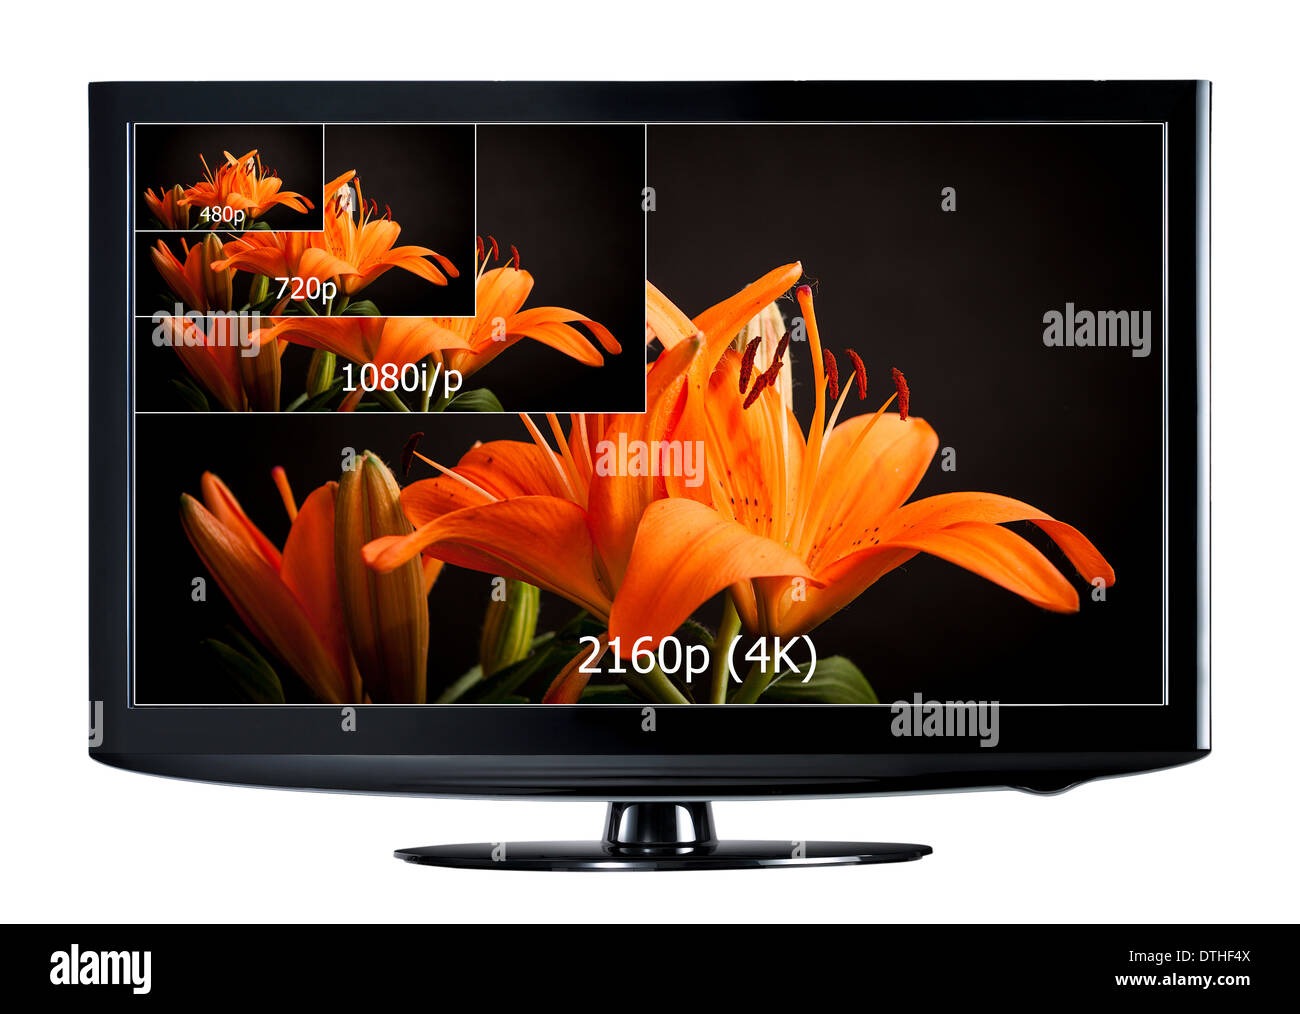 4K television display with comparison of resolutions. Ultra HD on on modern TV - Stock Image